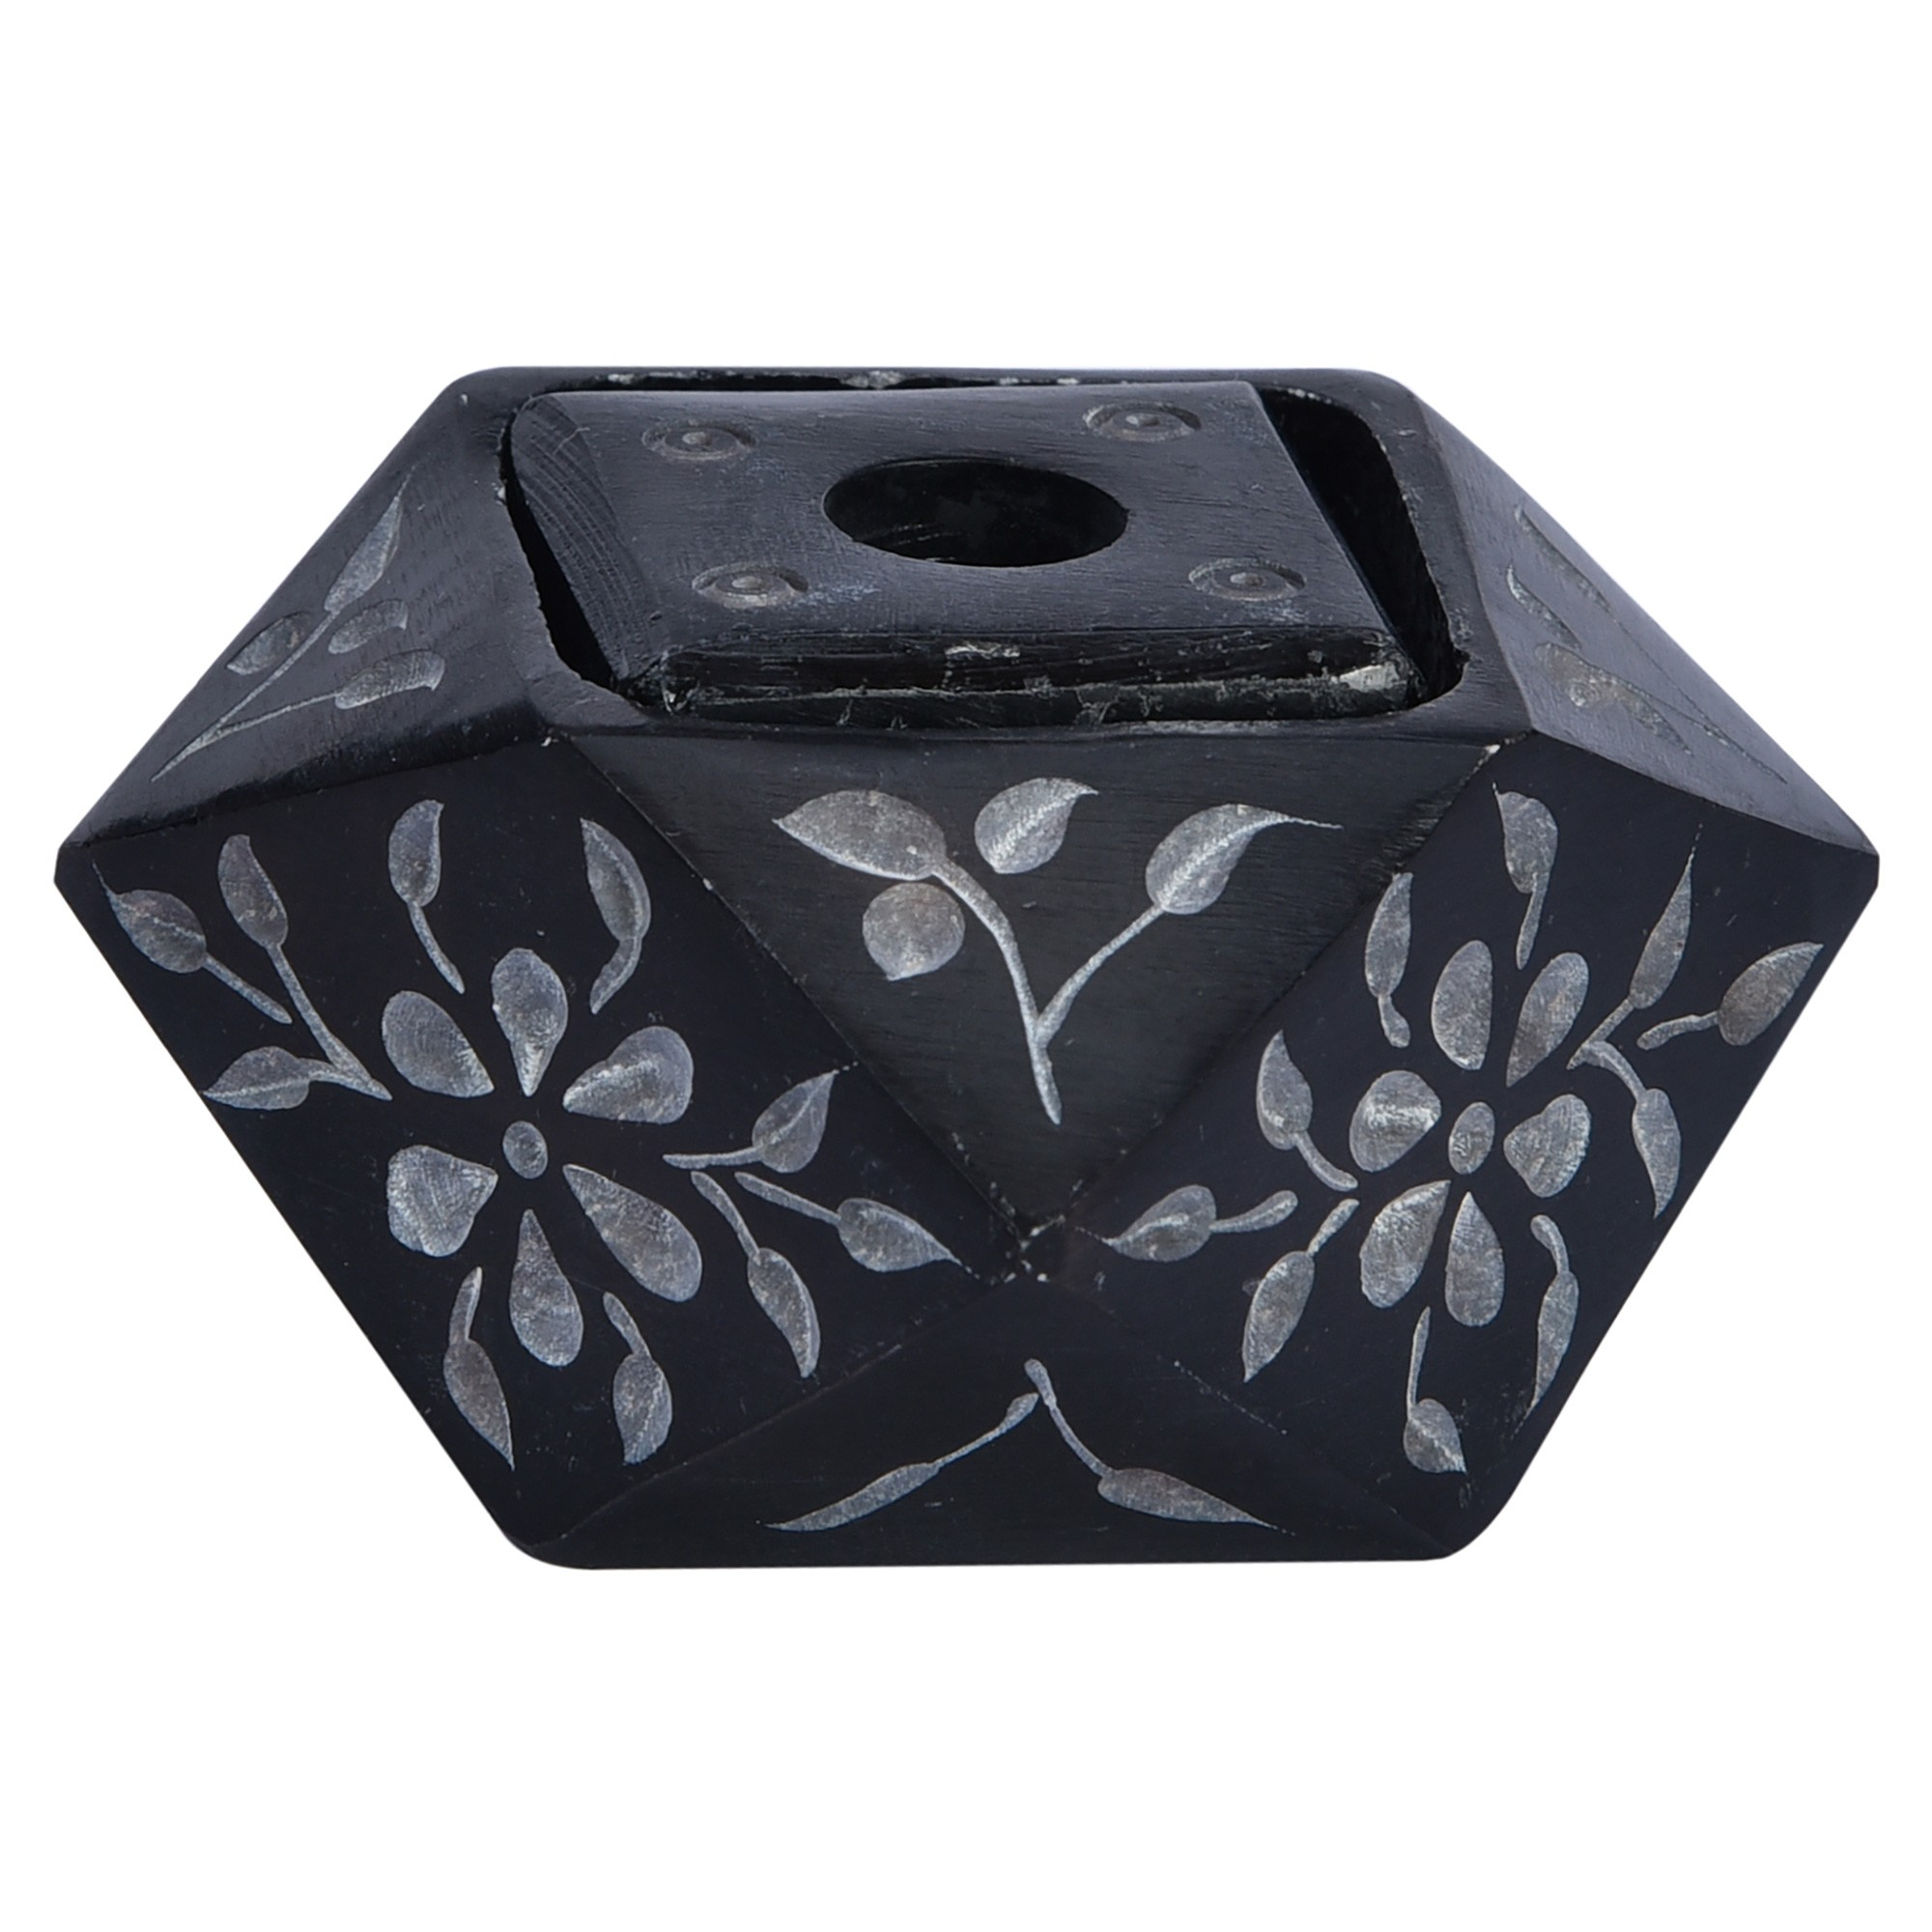 Poho Handcrafted Soapstone Candle Holder